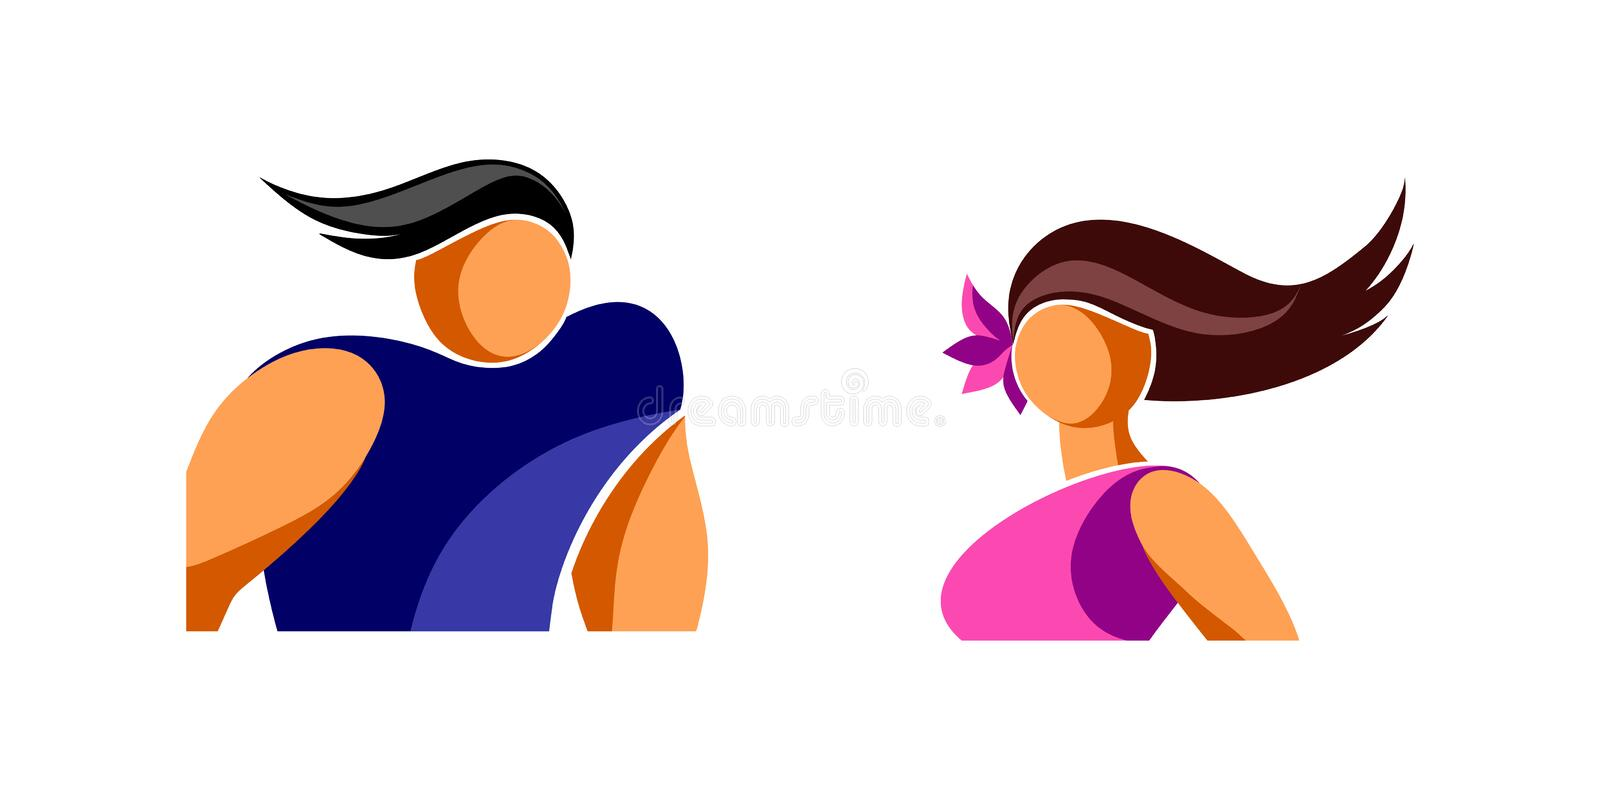 Avatars icons young man and woman. Simplified stylized image. isolated EPS 10 vector royalty free illustration